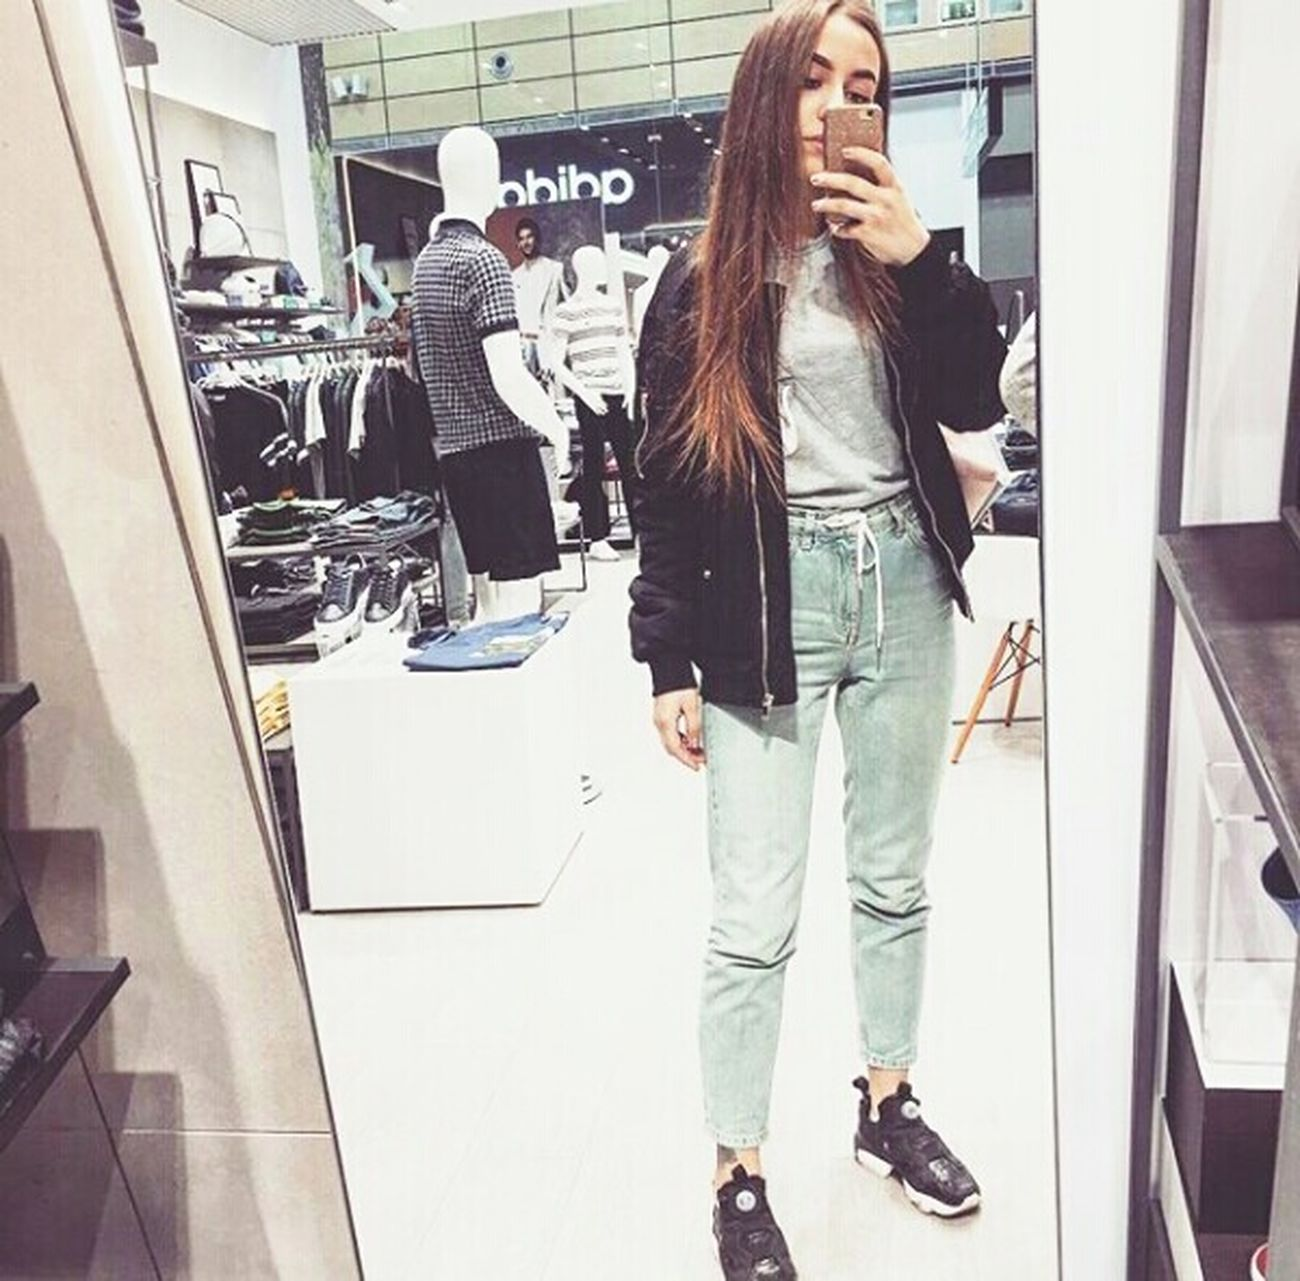 На стиле😎🙊☝👍👟👖🏧 Casual Clothing Jeans Lifestyles Store Mega мегапарнас Looking At Camera Russia Saint Petersburg Withmylove Walking Happiness Still Life Selfie Myboy💕 Shopping ♡ NewSneakers Pumpitup Reebokpumps First Eyeem Photo